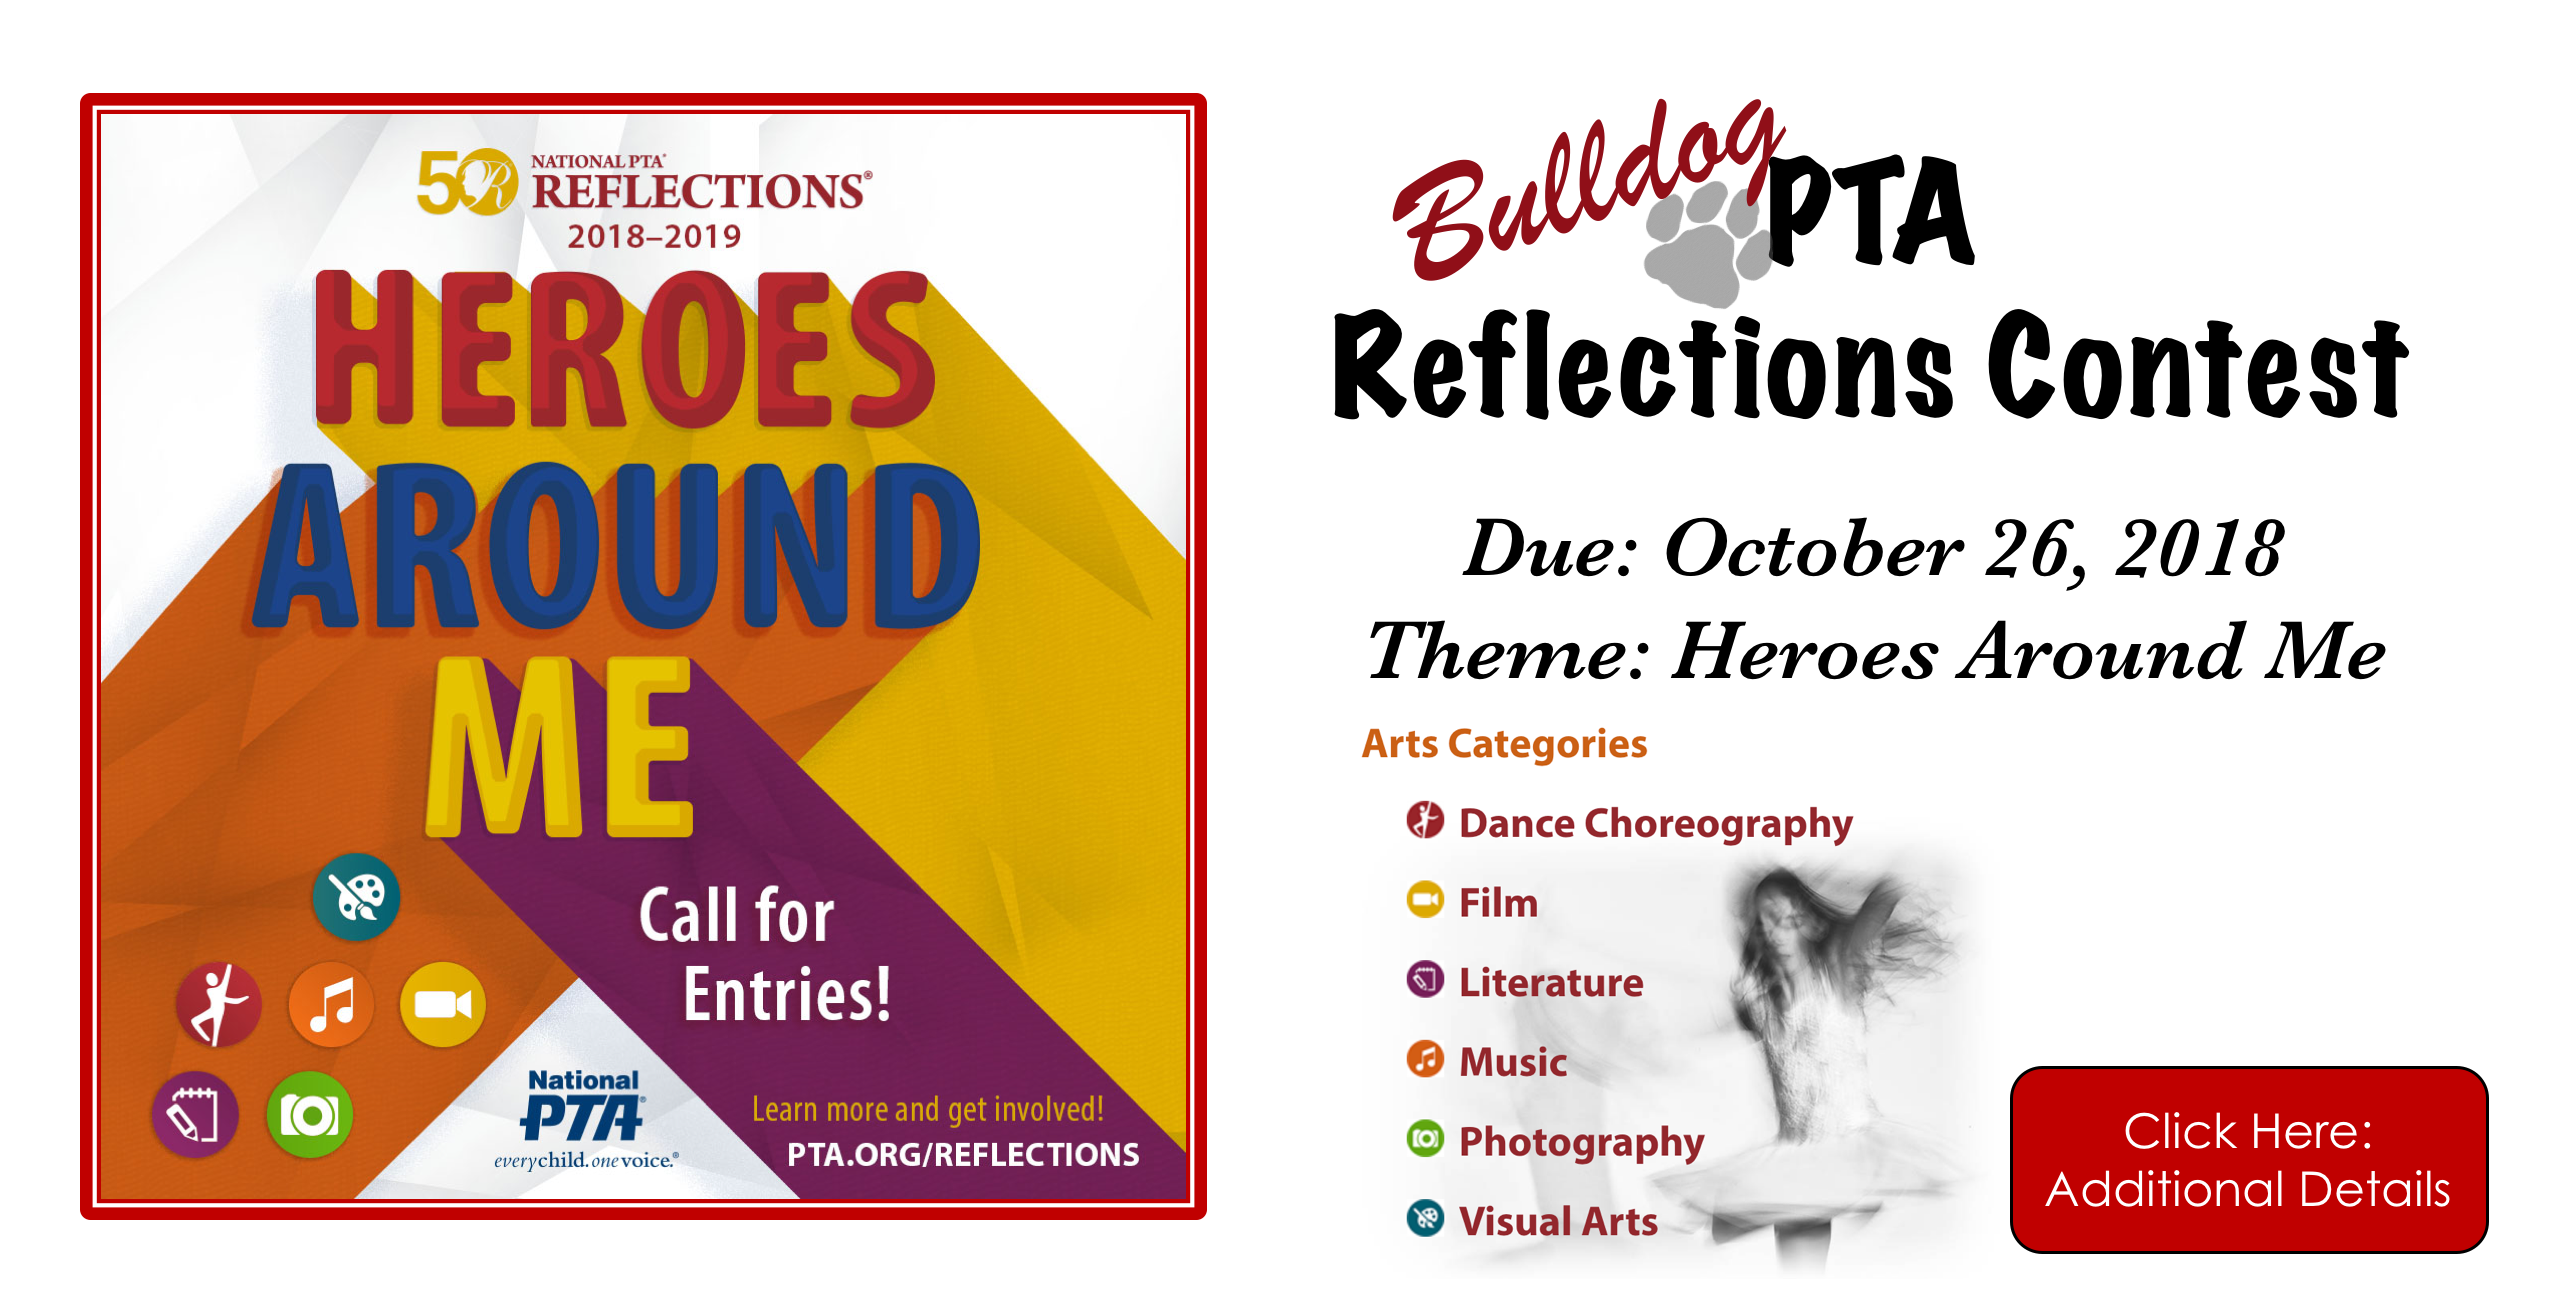 PTA Reflections Contest - Click here for more information